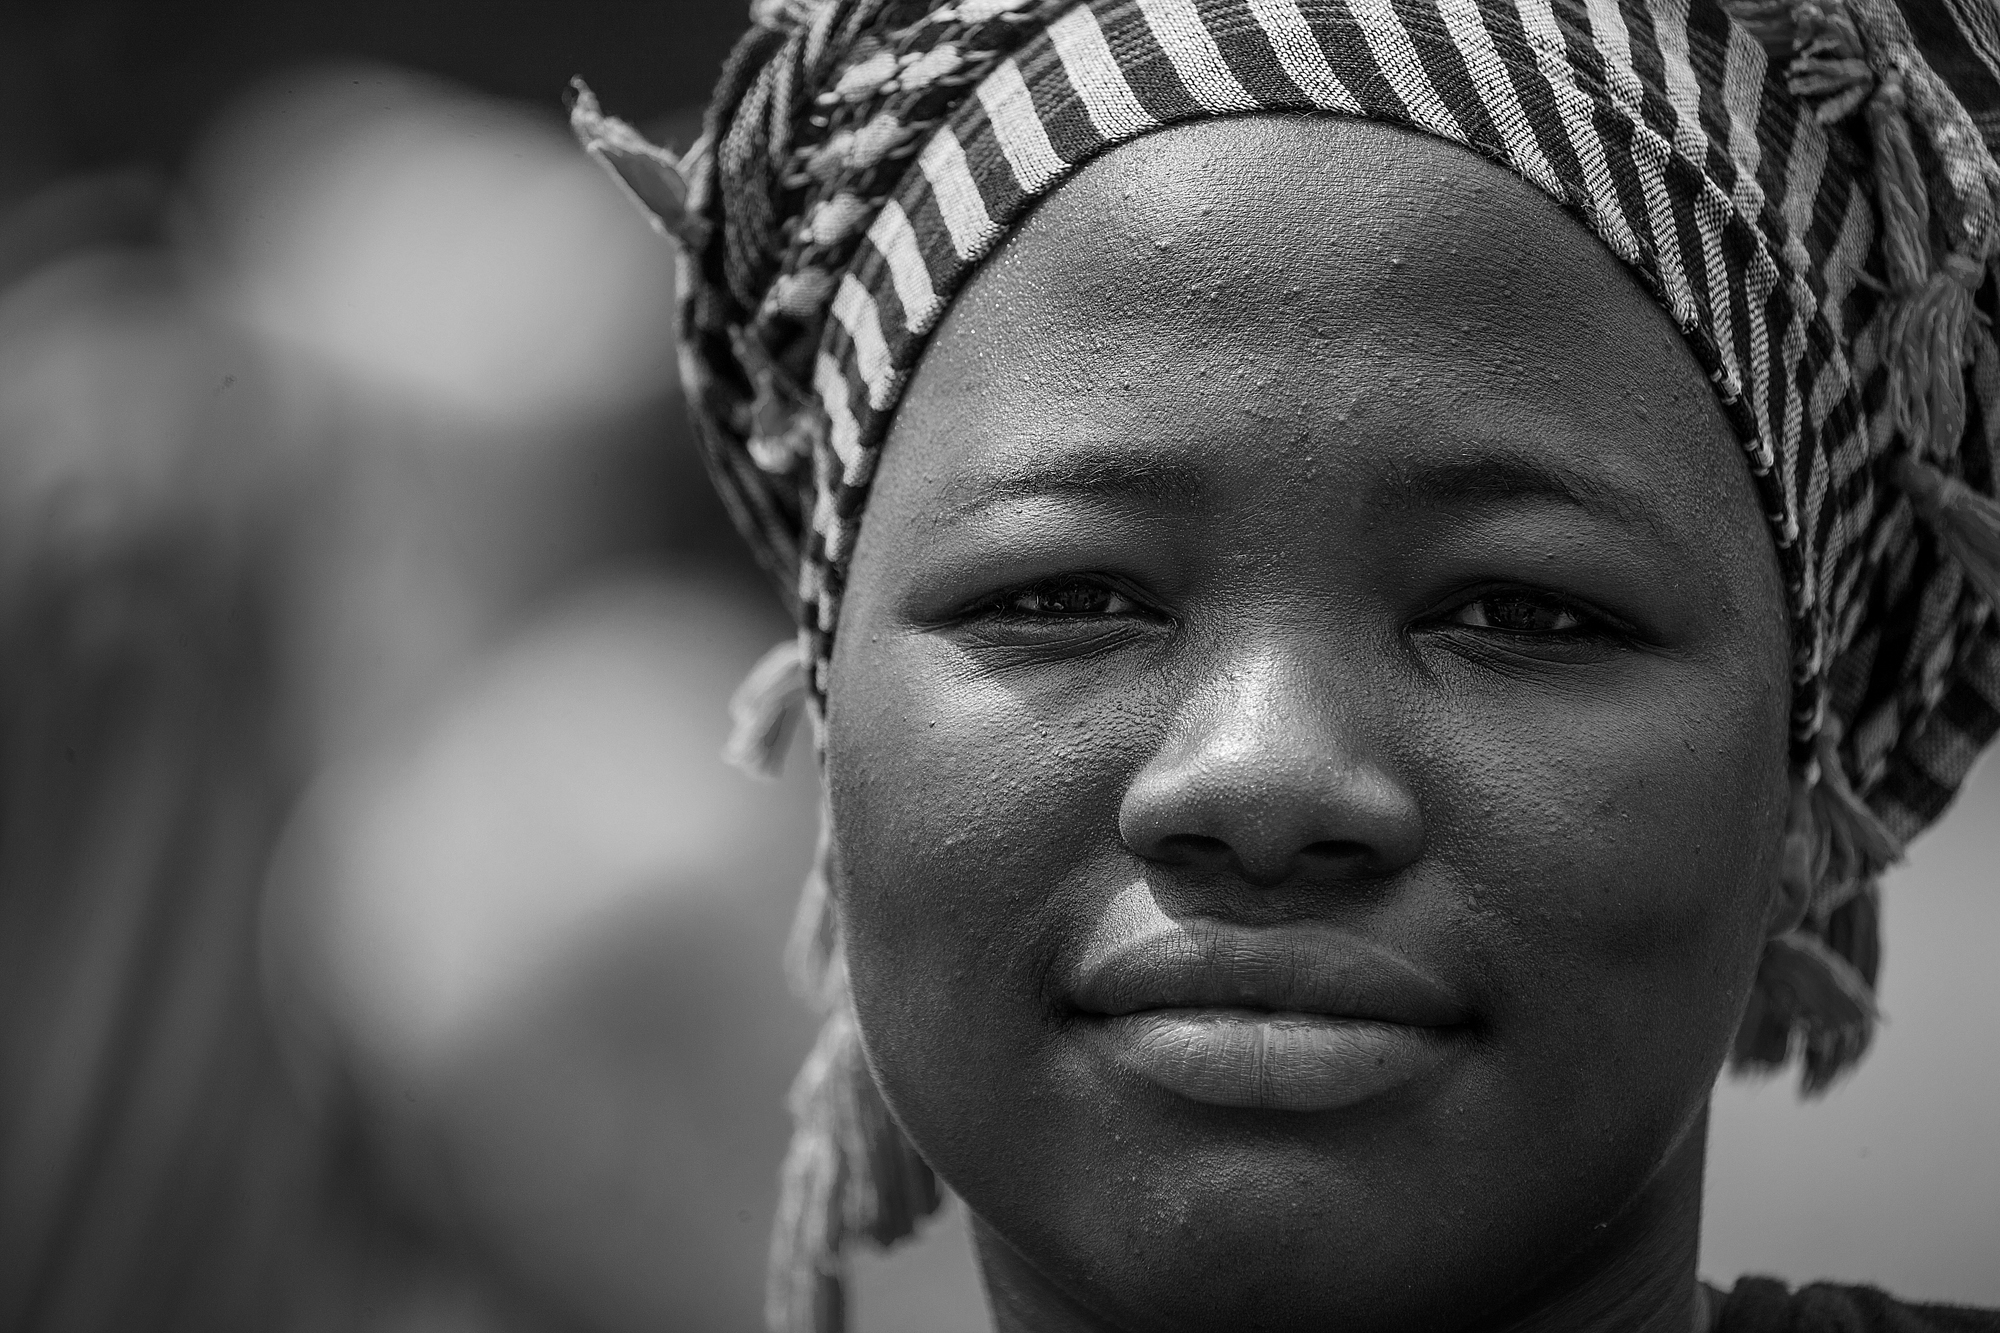 The African Woman